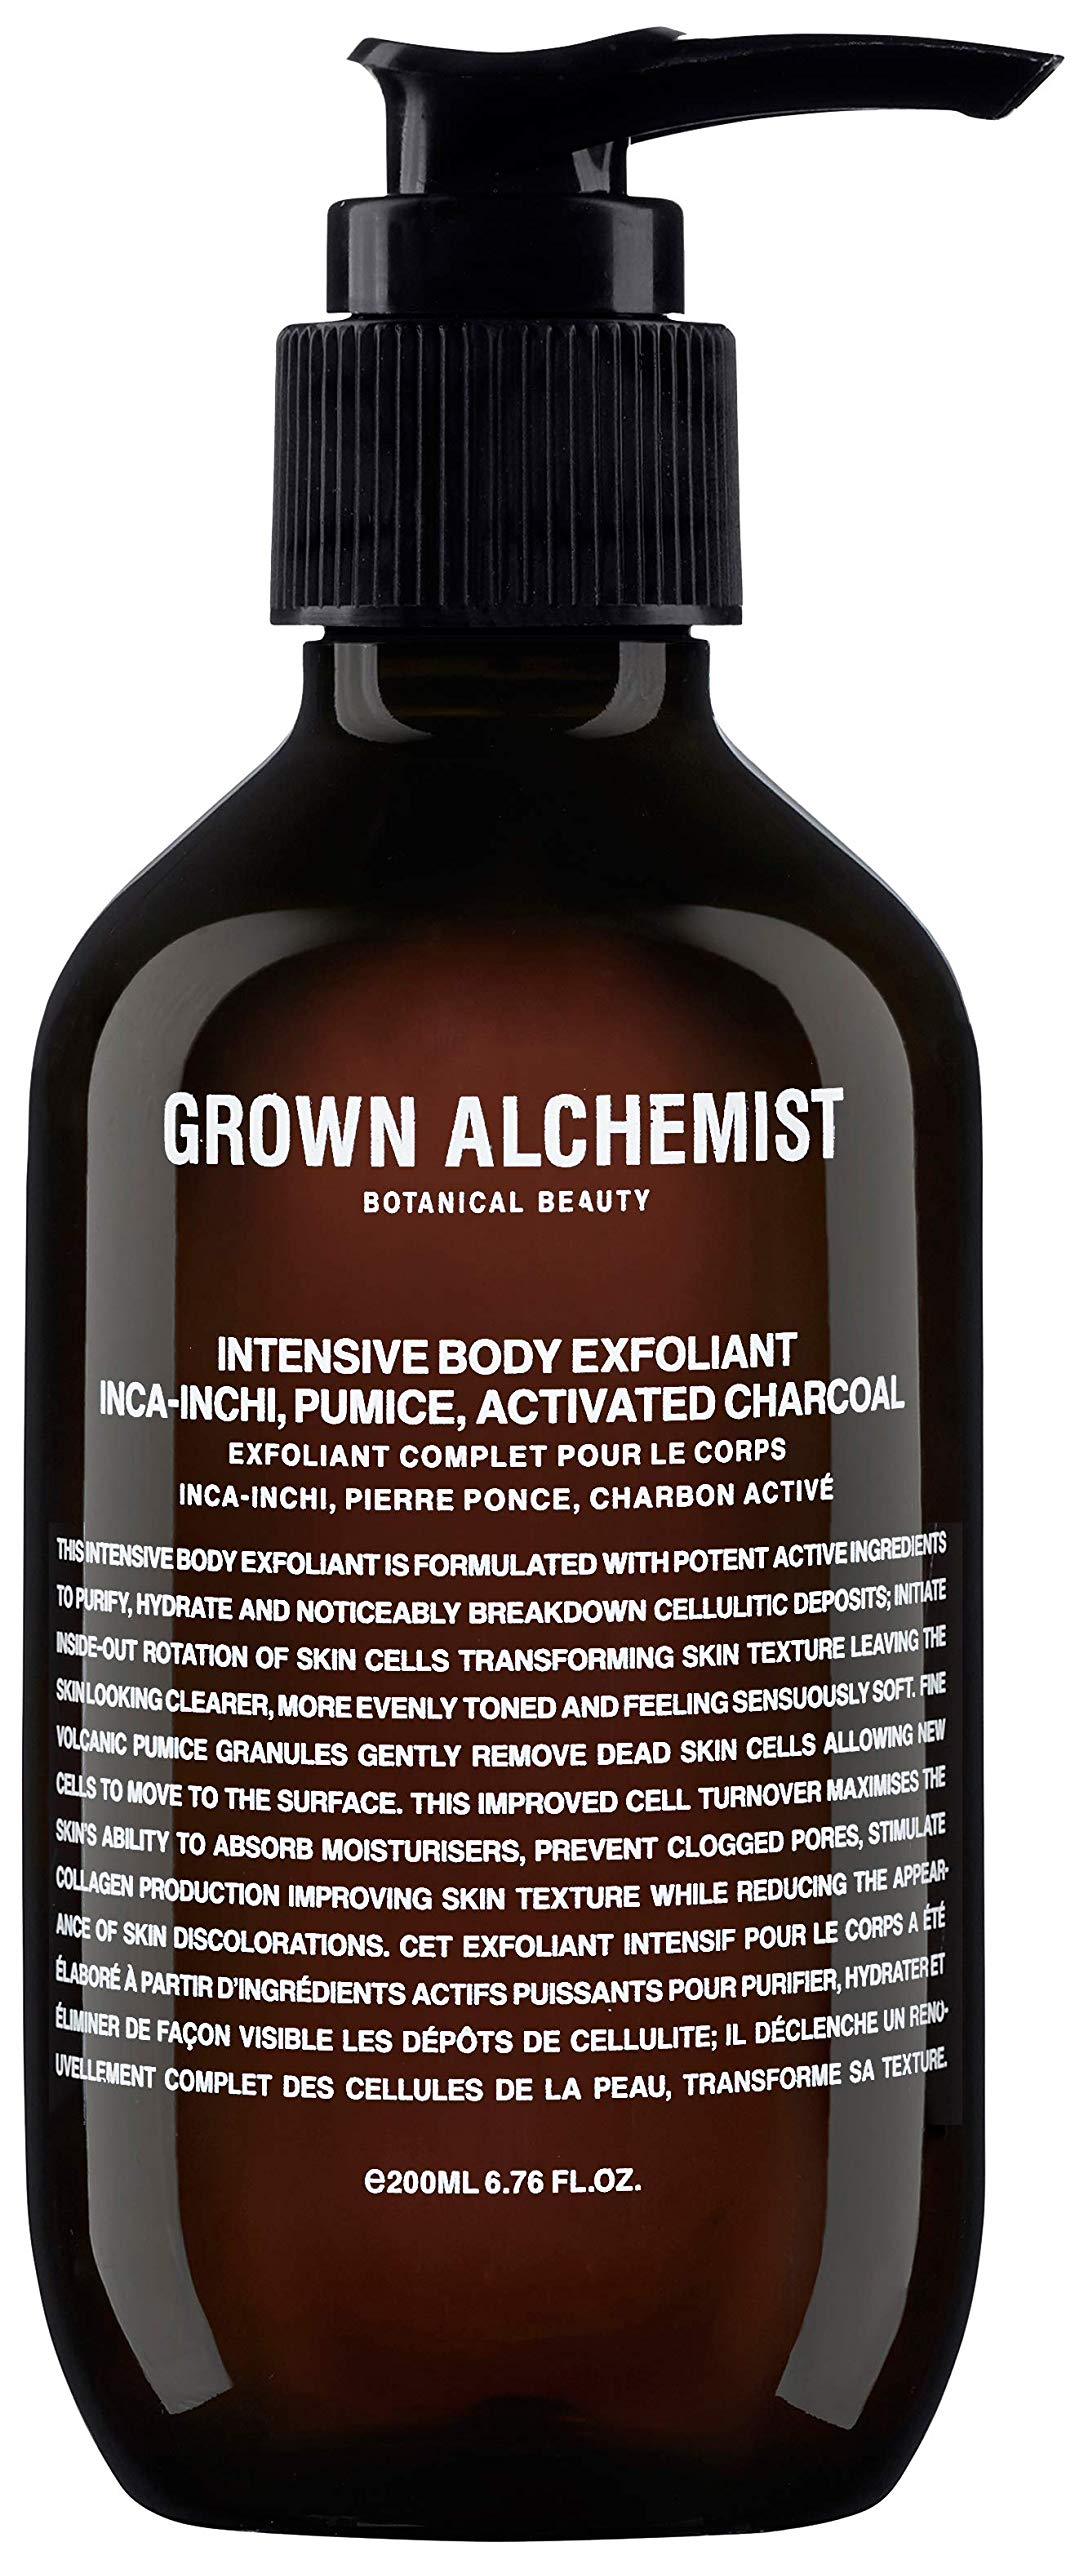 Grown Alchemist Intensive Body Exfoliant - Inca-Inchi, Pumice & Activated Charcoal Scrub (200 Milliliters, 6.76 Ounces)